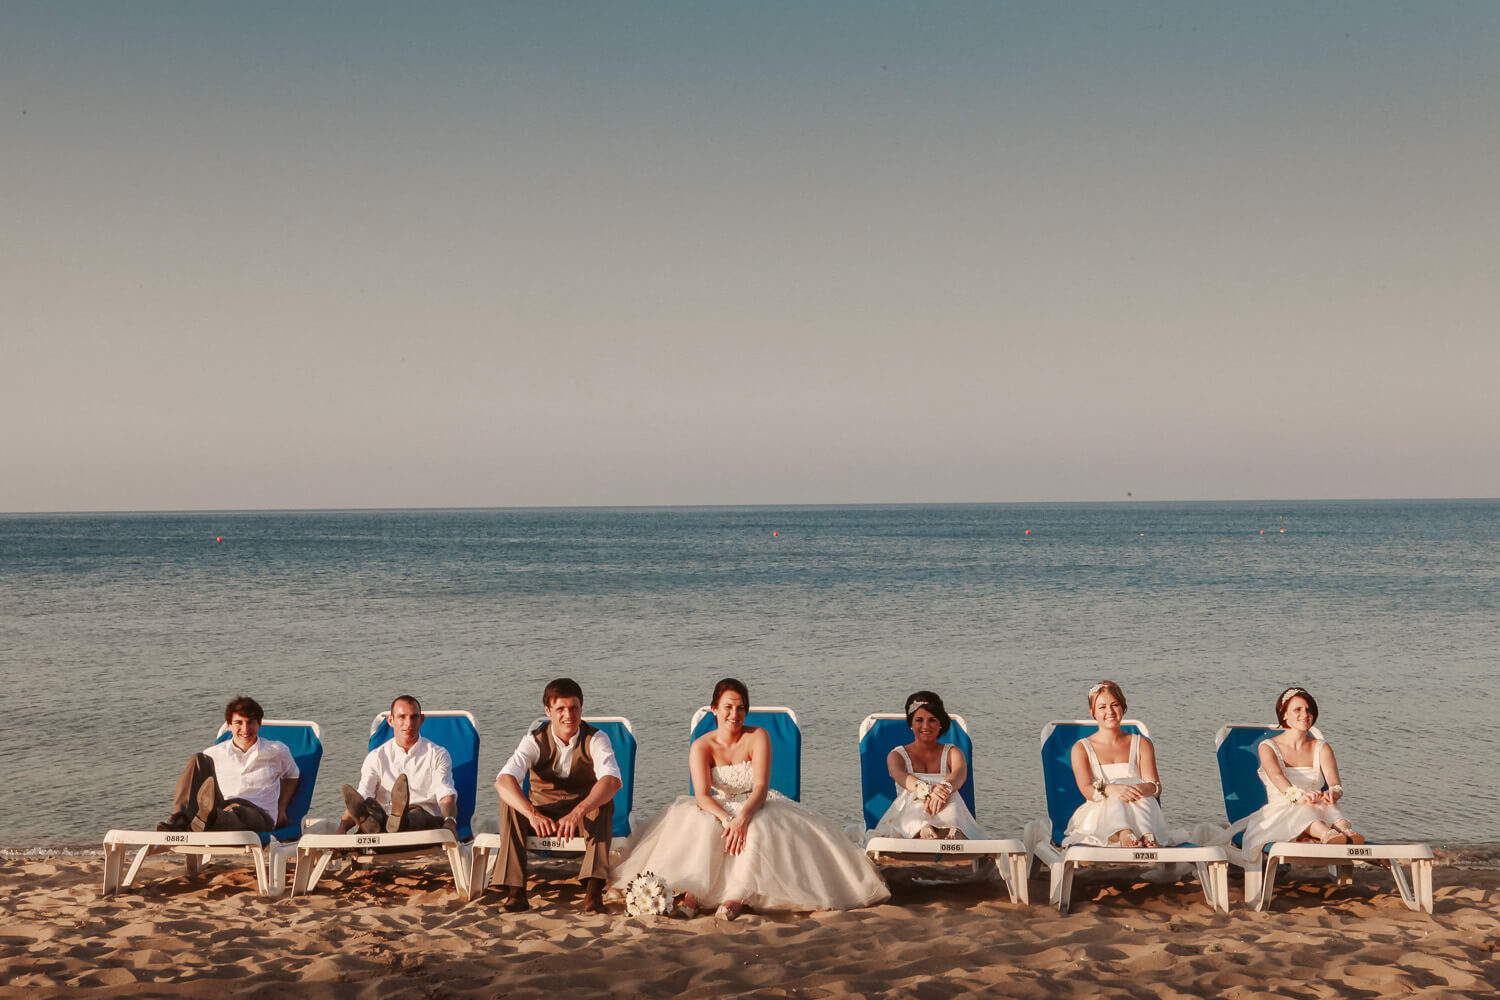 Bridal party on sun loungers at beach wedding Protaras Cyprus